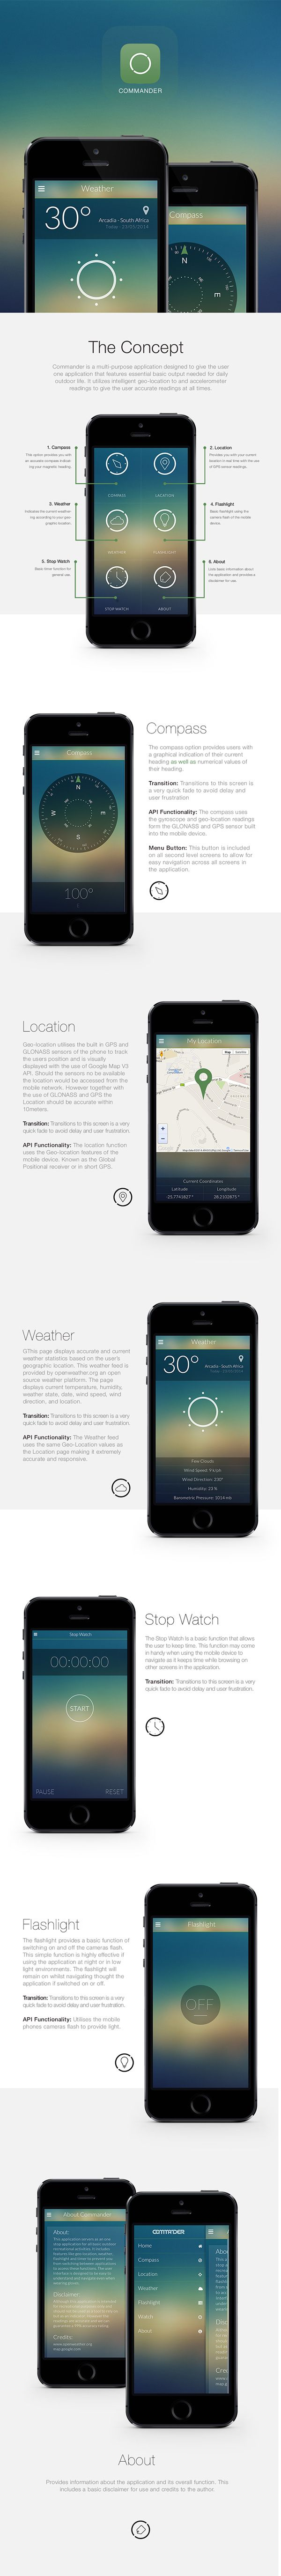 Commander App by Henk Badenhorst, via Behance https://www.behance.net/henk_badenhorst